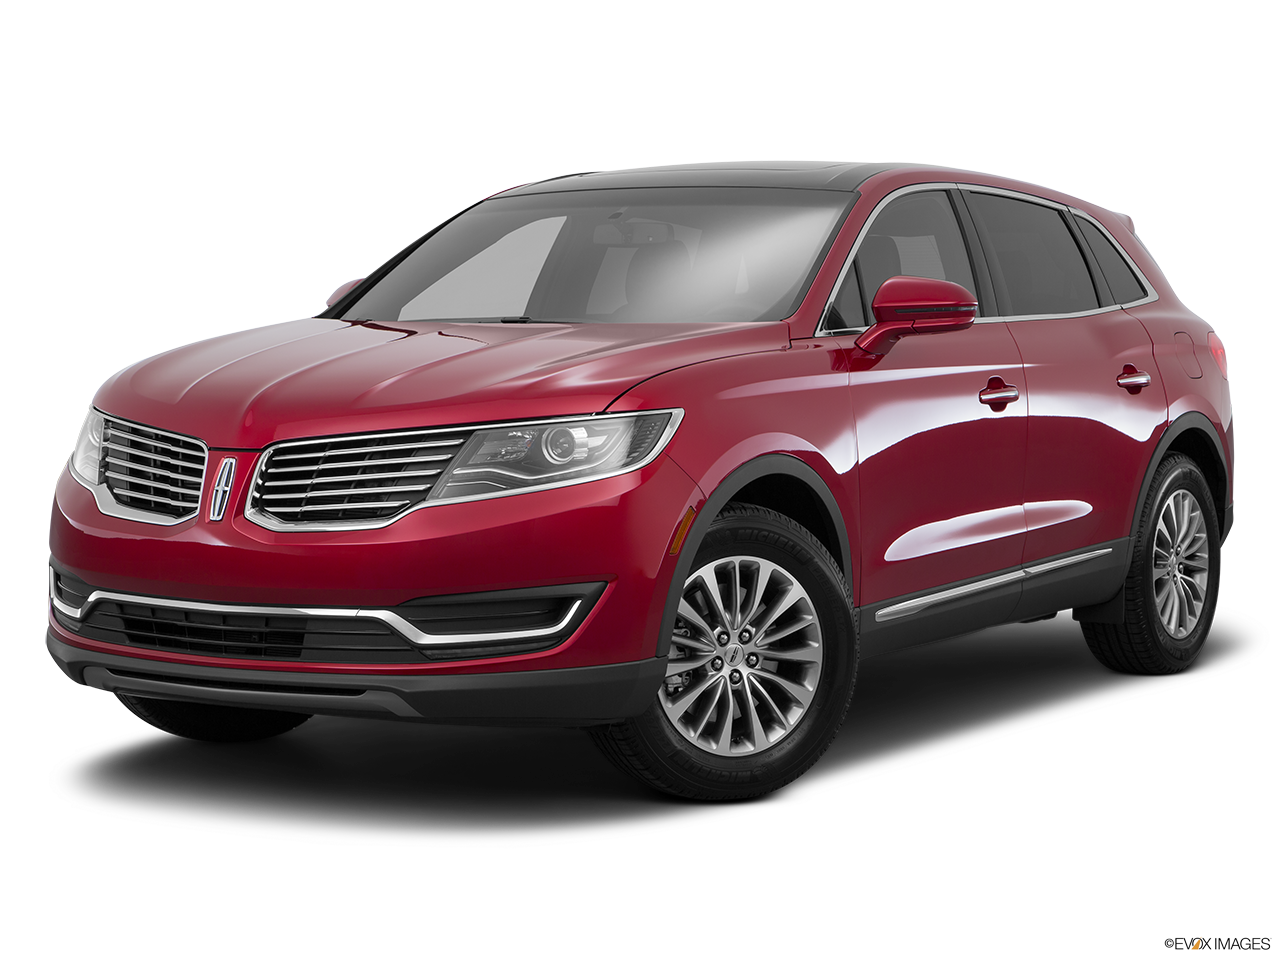 Test Drive A 2016 Lincoln MKX at Galpin Lincoln in Los Angeles